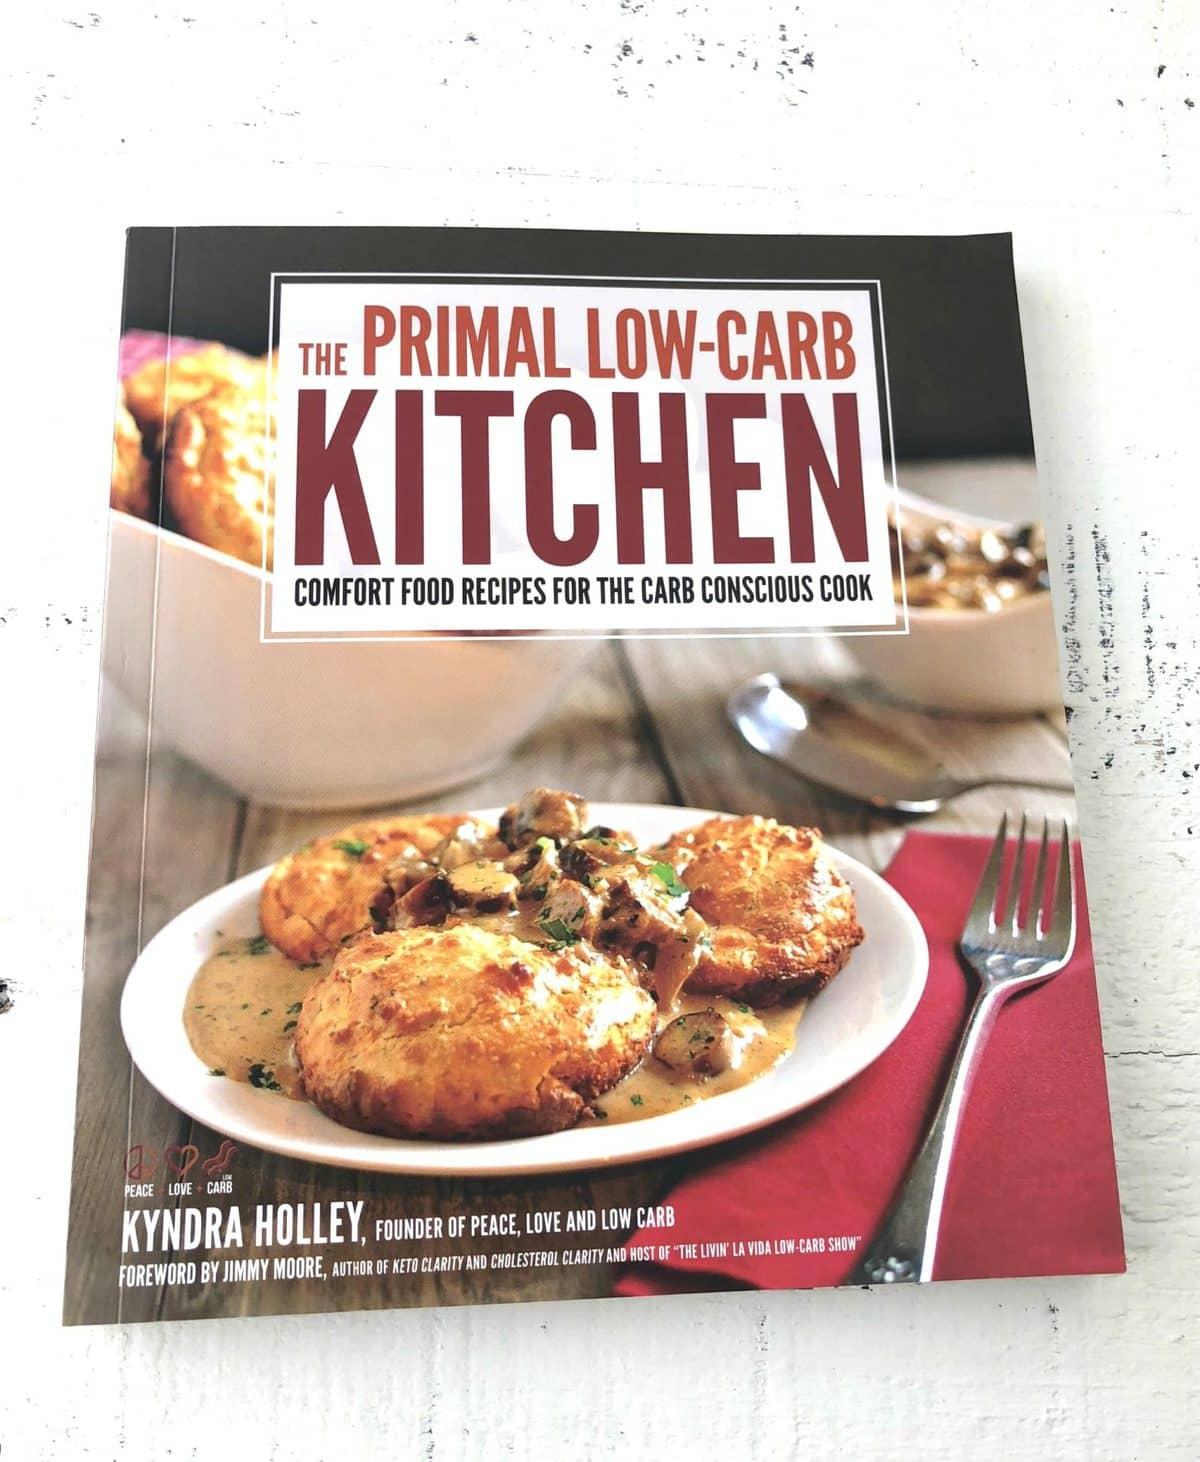 The Primal Low Carb Kitchen Cookbook By Kyndra D. Holley